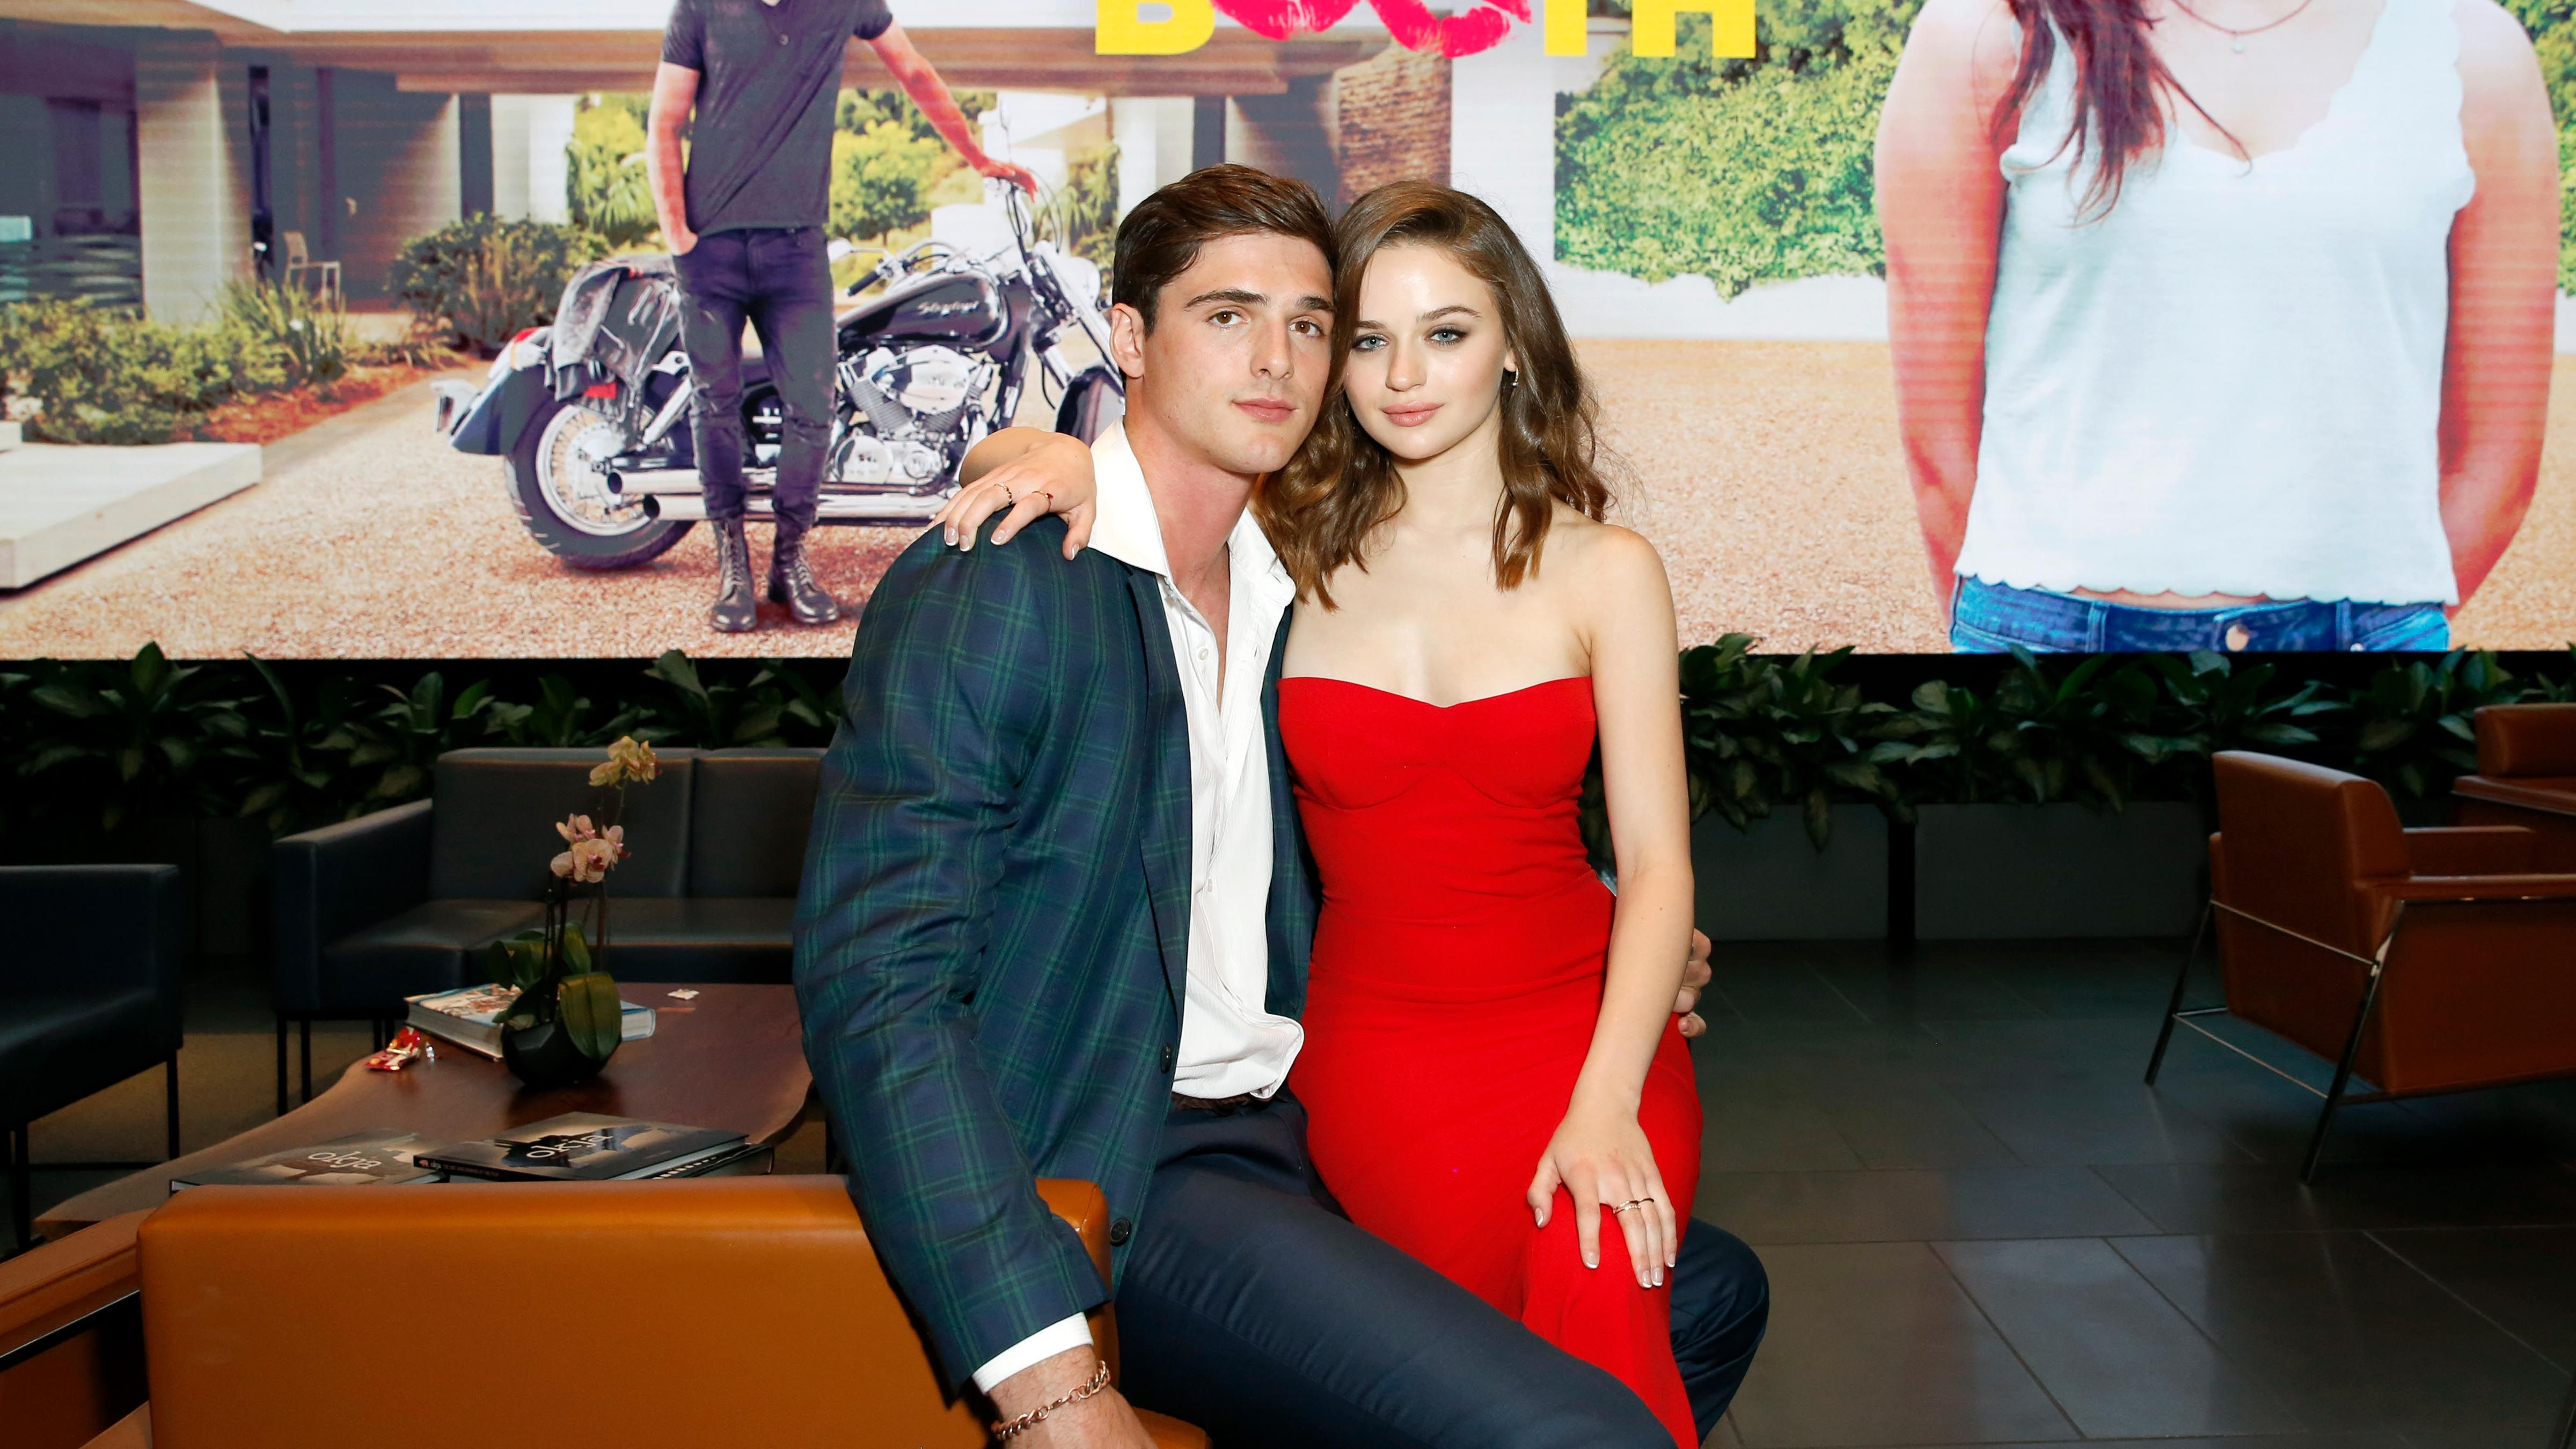 Joey King Says She Couldn T Date Another Actor After Breakup With Kissing Booth Co Star Jacob Elordi Netflix star joey king stars in the kissing booth alongside her ex, jacob elordi, so who is she dating in 2020? kissing booth co star jacob elordi